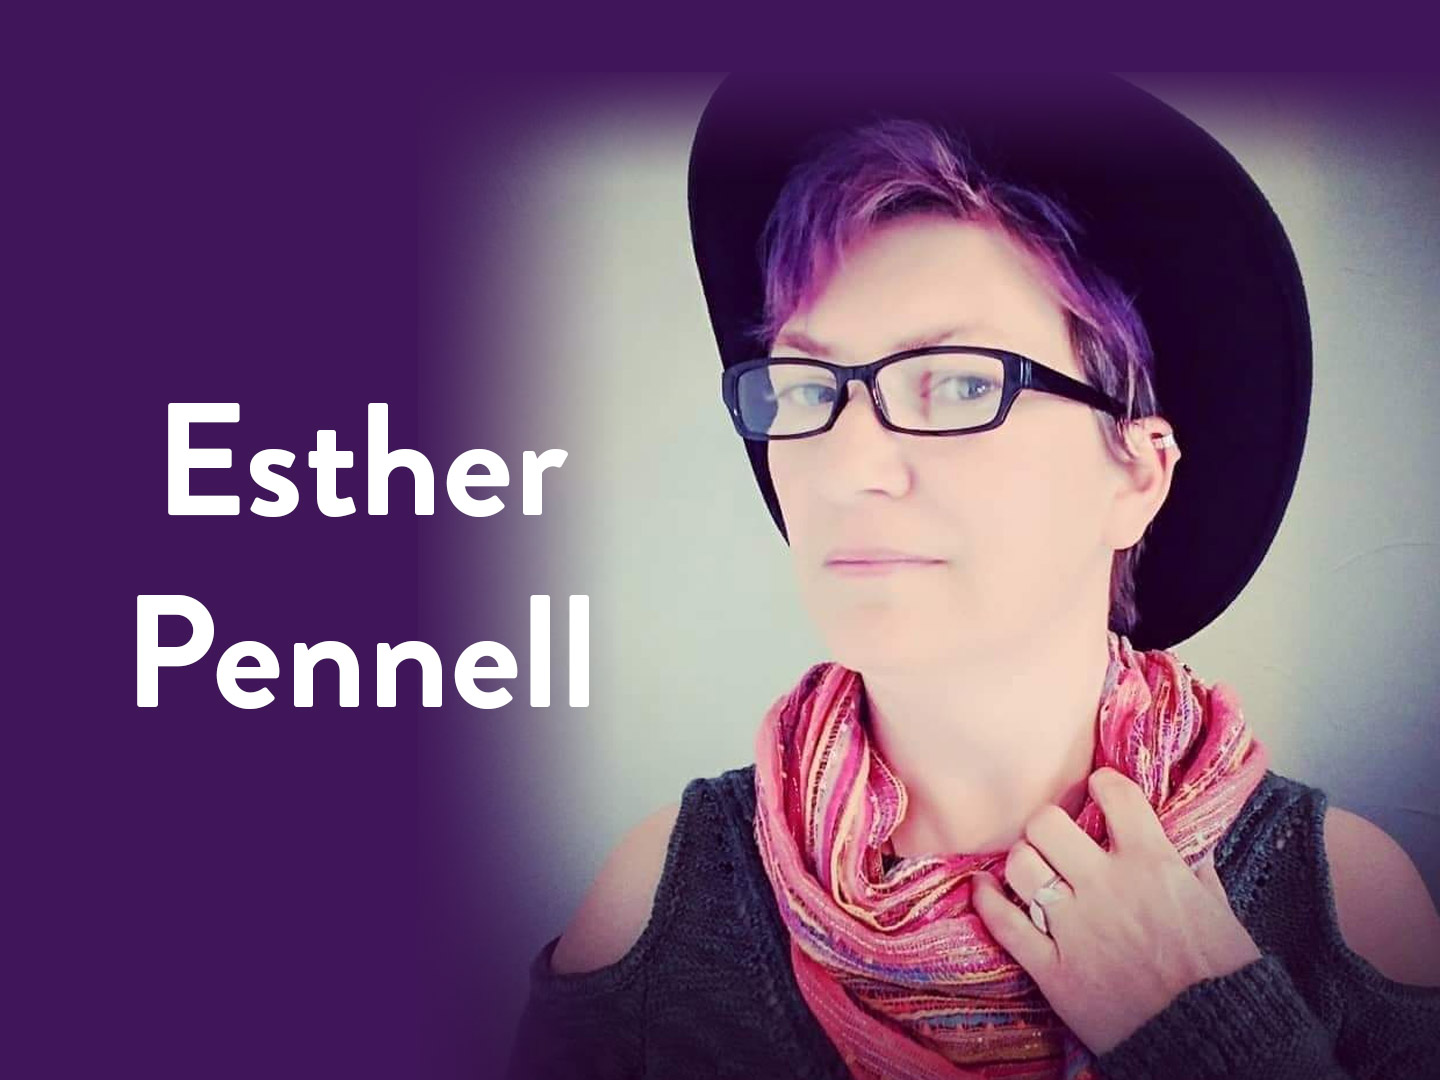 Esther Pennell · sharedbenefit Concert